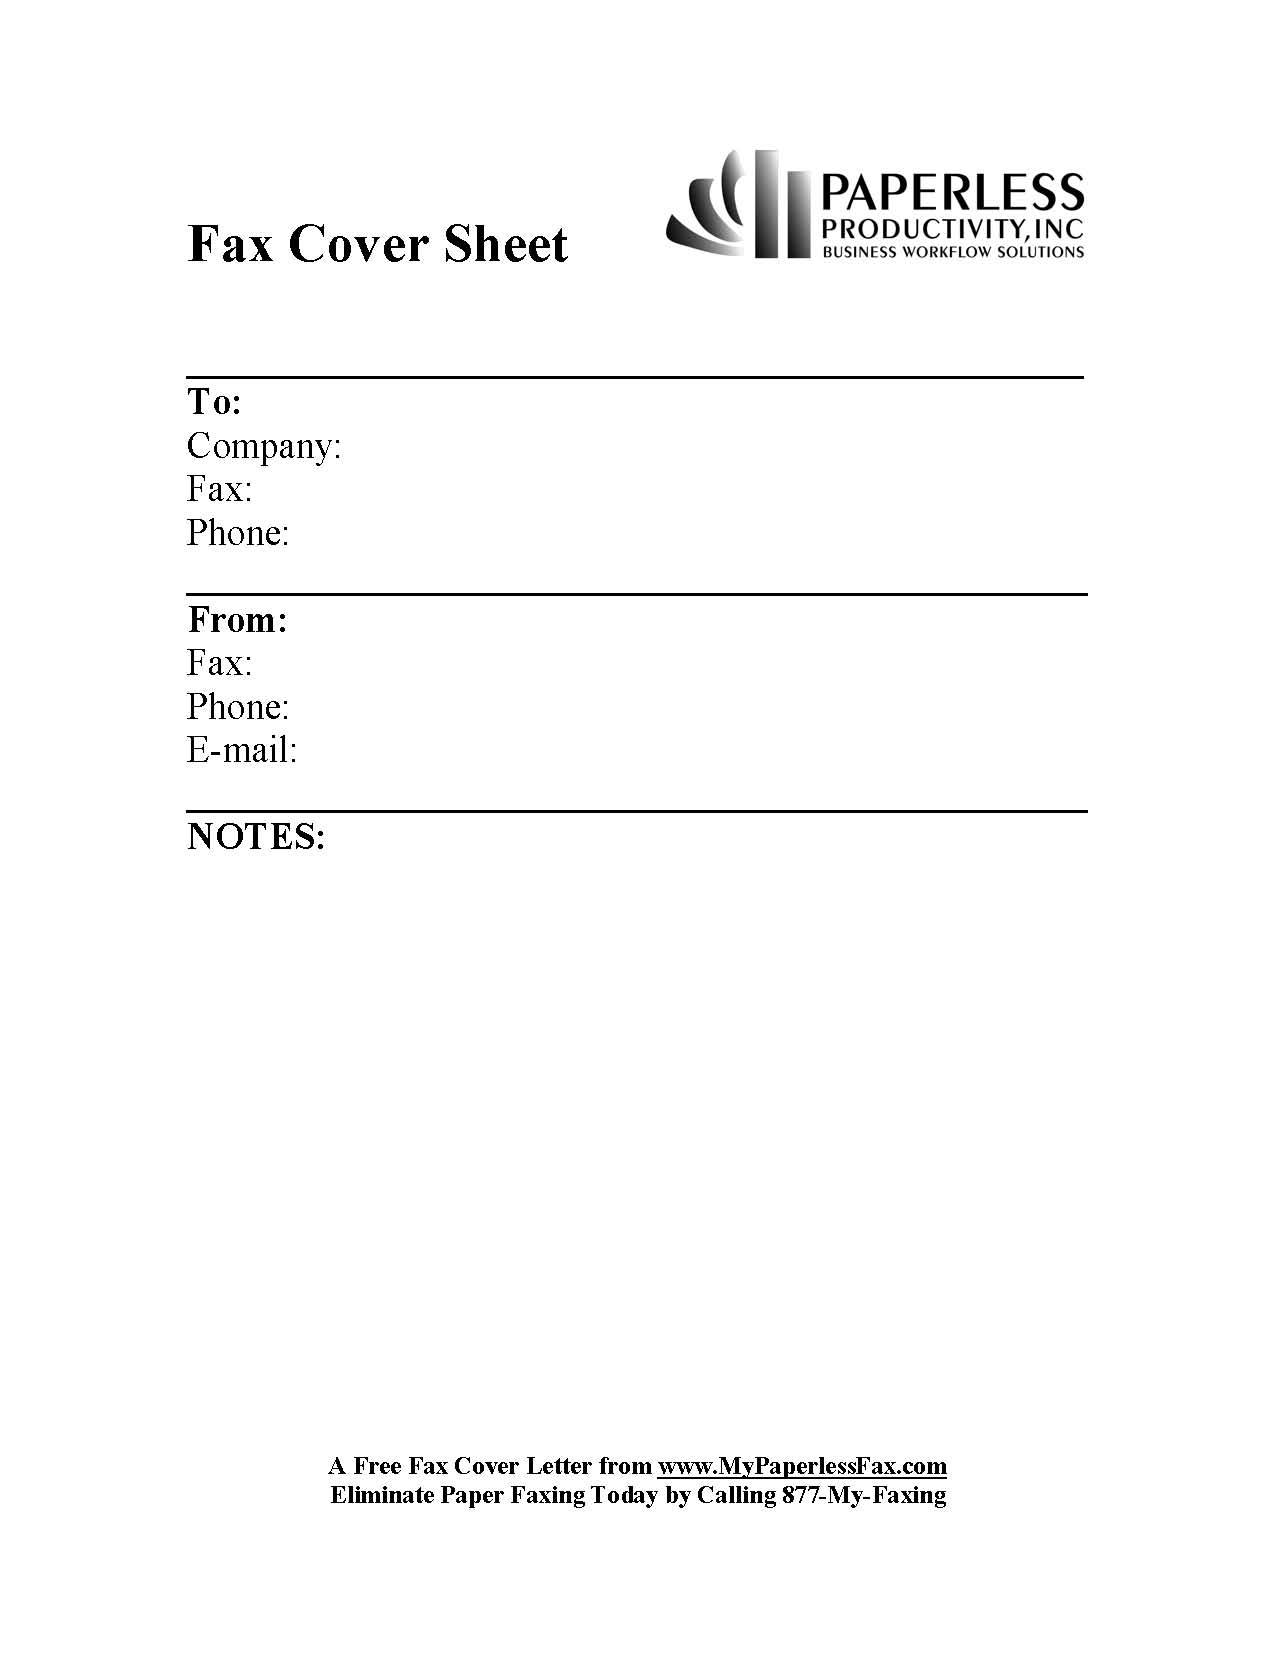 fax cover letter outline fax cover letter resume sample fax cover ...